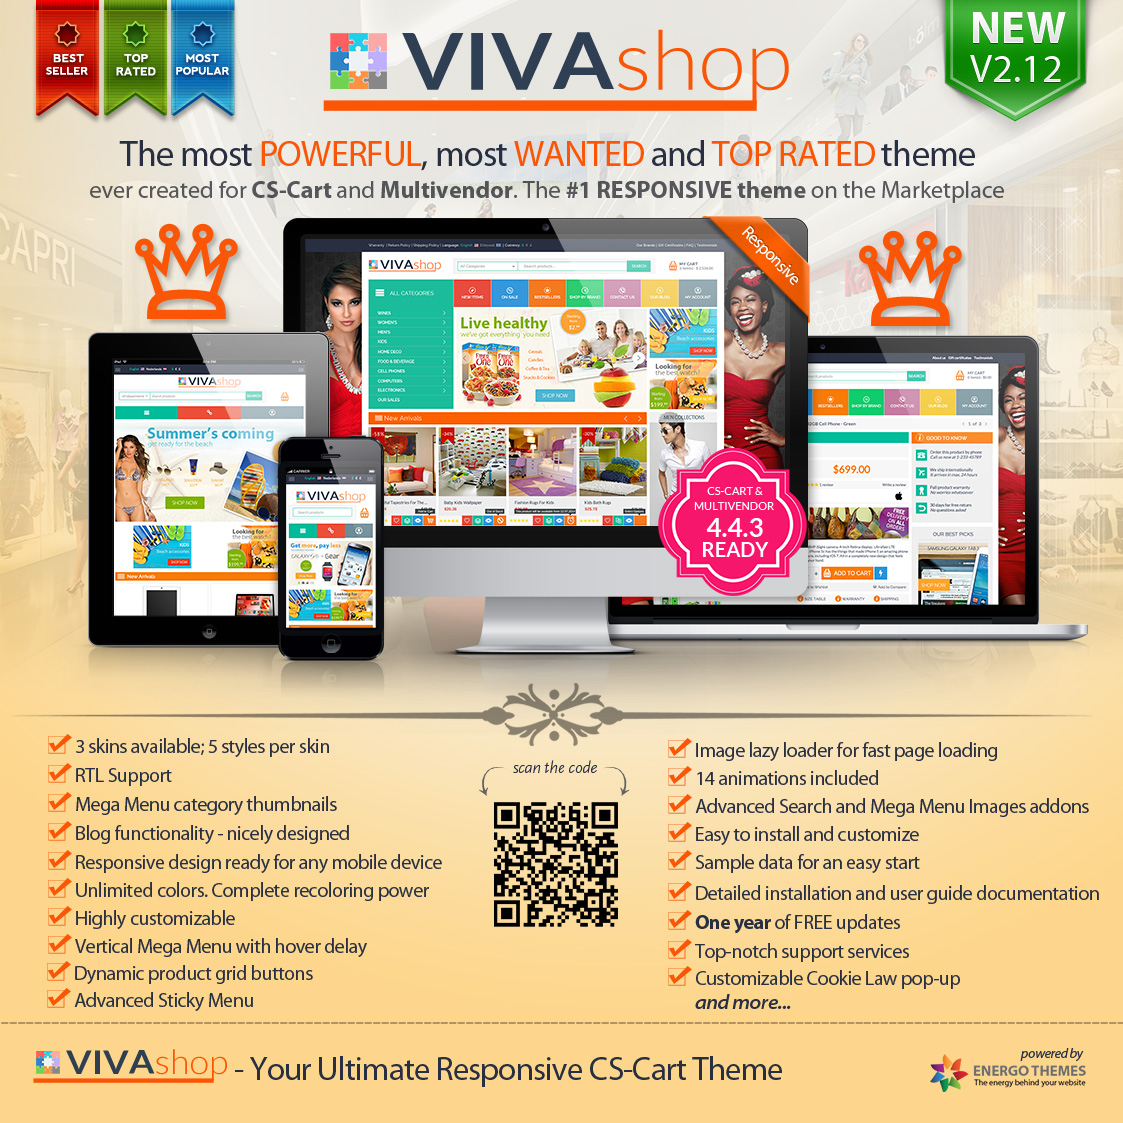 VIVAshop-V2.12-presentation-page-MP.jpg